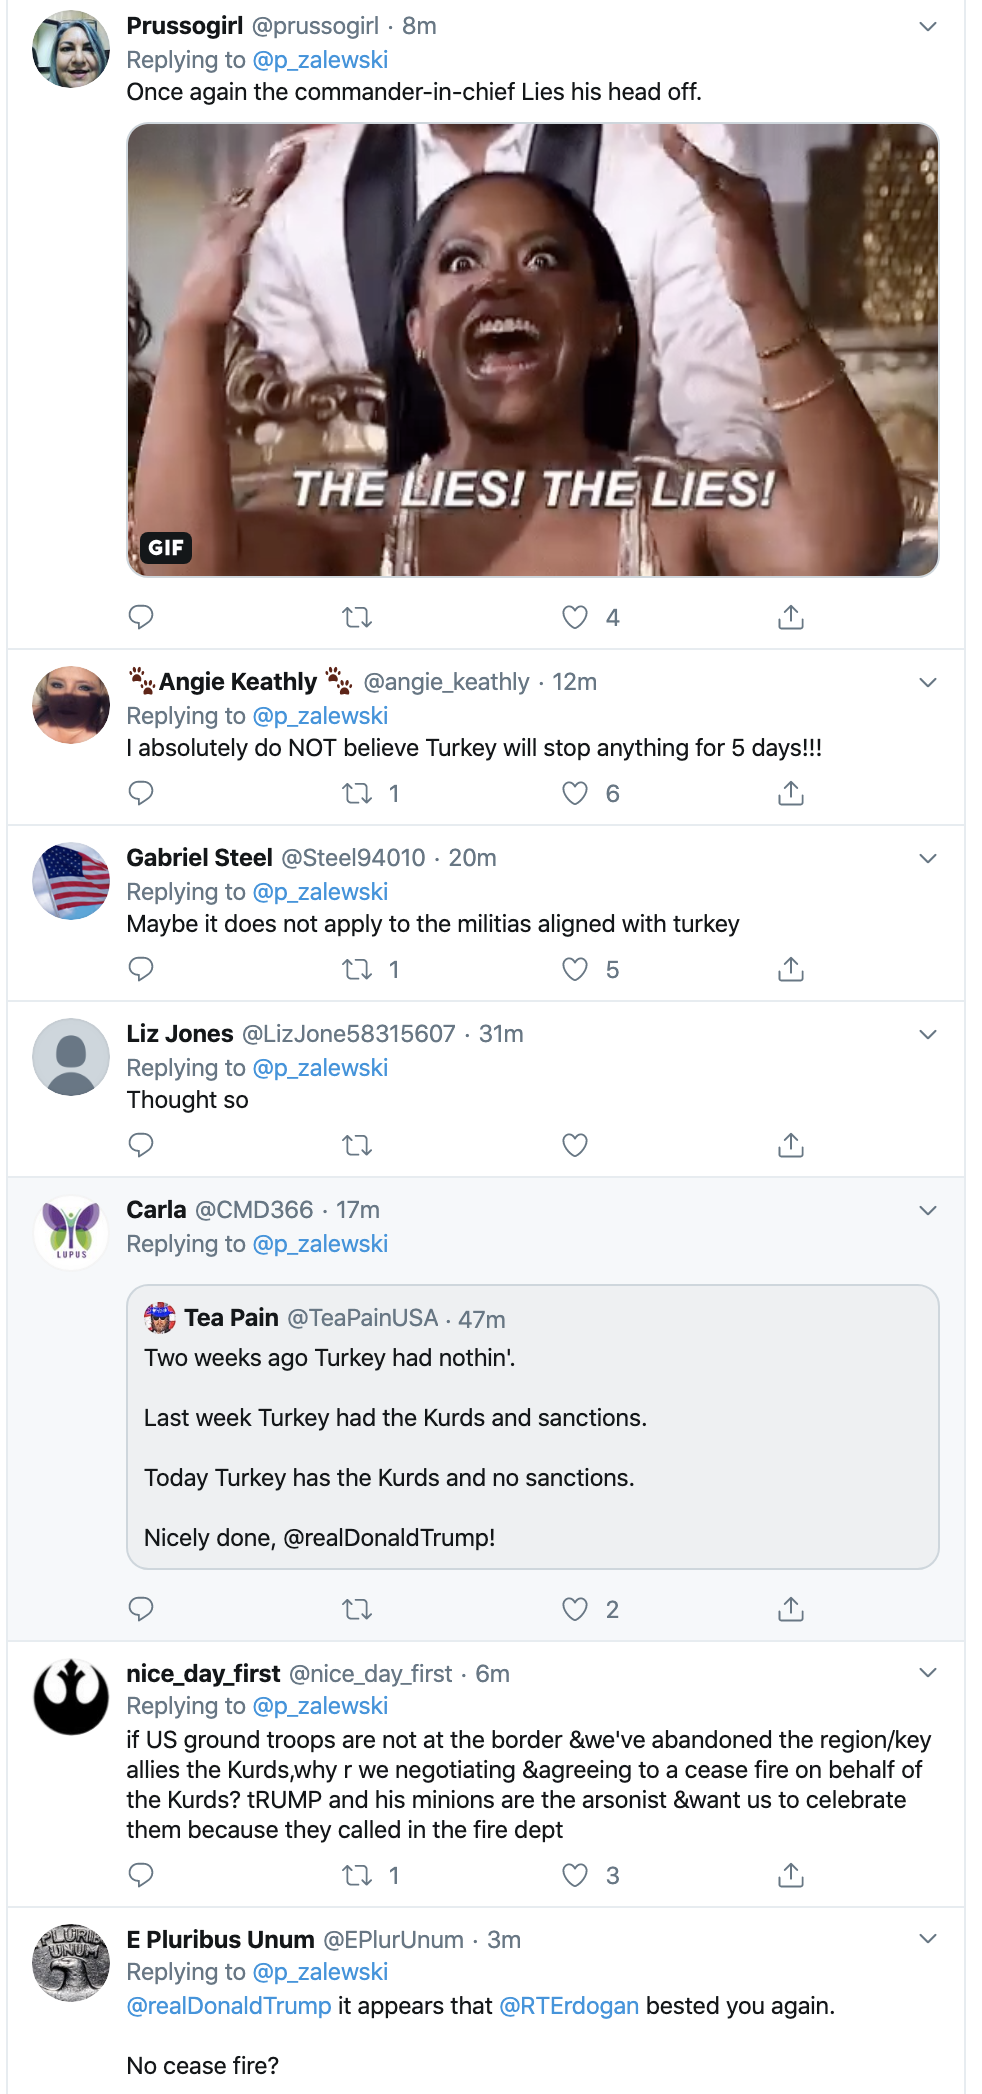 Screen-Shot-2019-10-17-at-1.42.56-PM Turkey Says No Ceasefire; Trump/Pence Lied Again Corruption Crime Donald Trump Election 2016 Election 2020 Featured Foreign Policy Military Politics Top Stories War